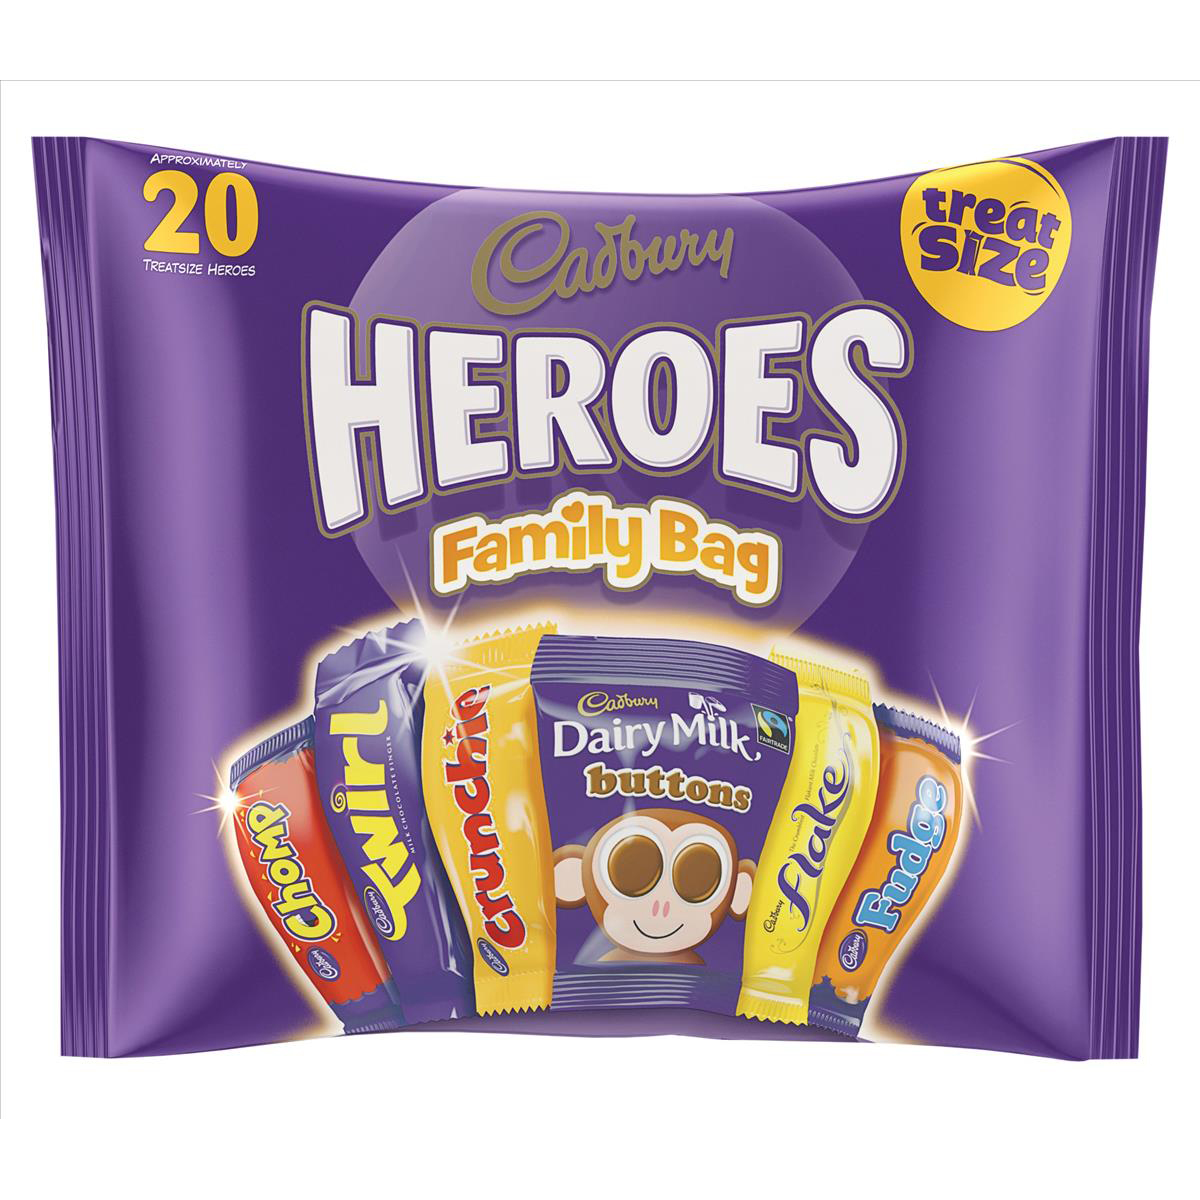 Chocolate or chocolate substitute candy Cadbury Heroes Family Bag 20 Treatsize 278g Ref A03807